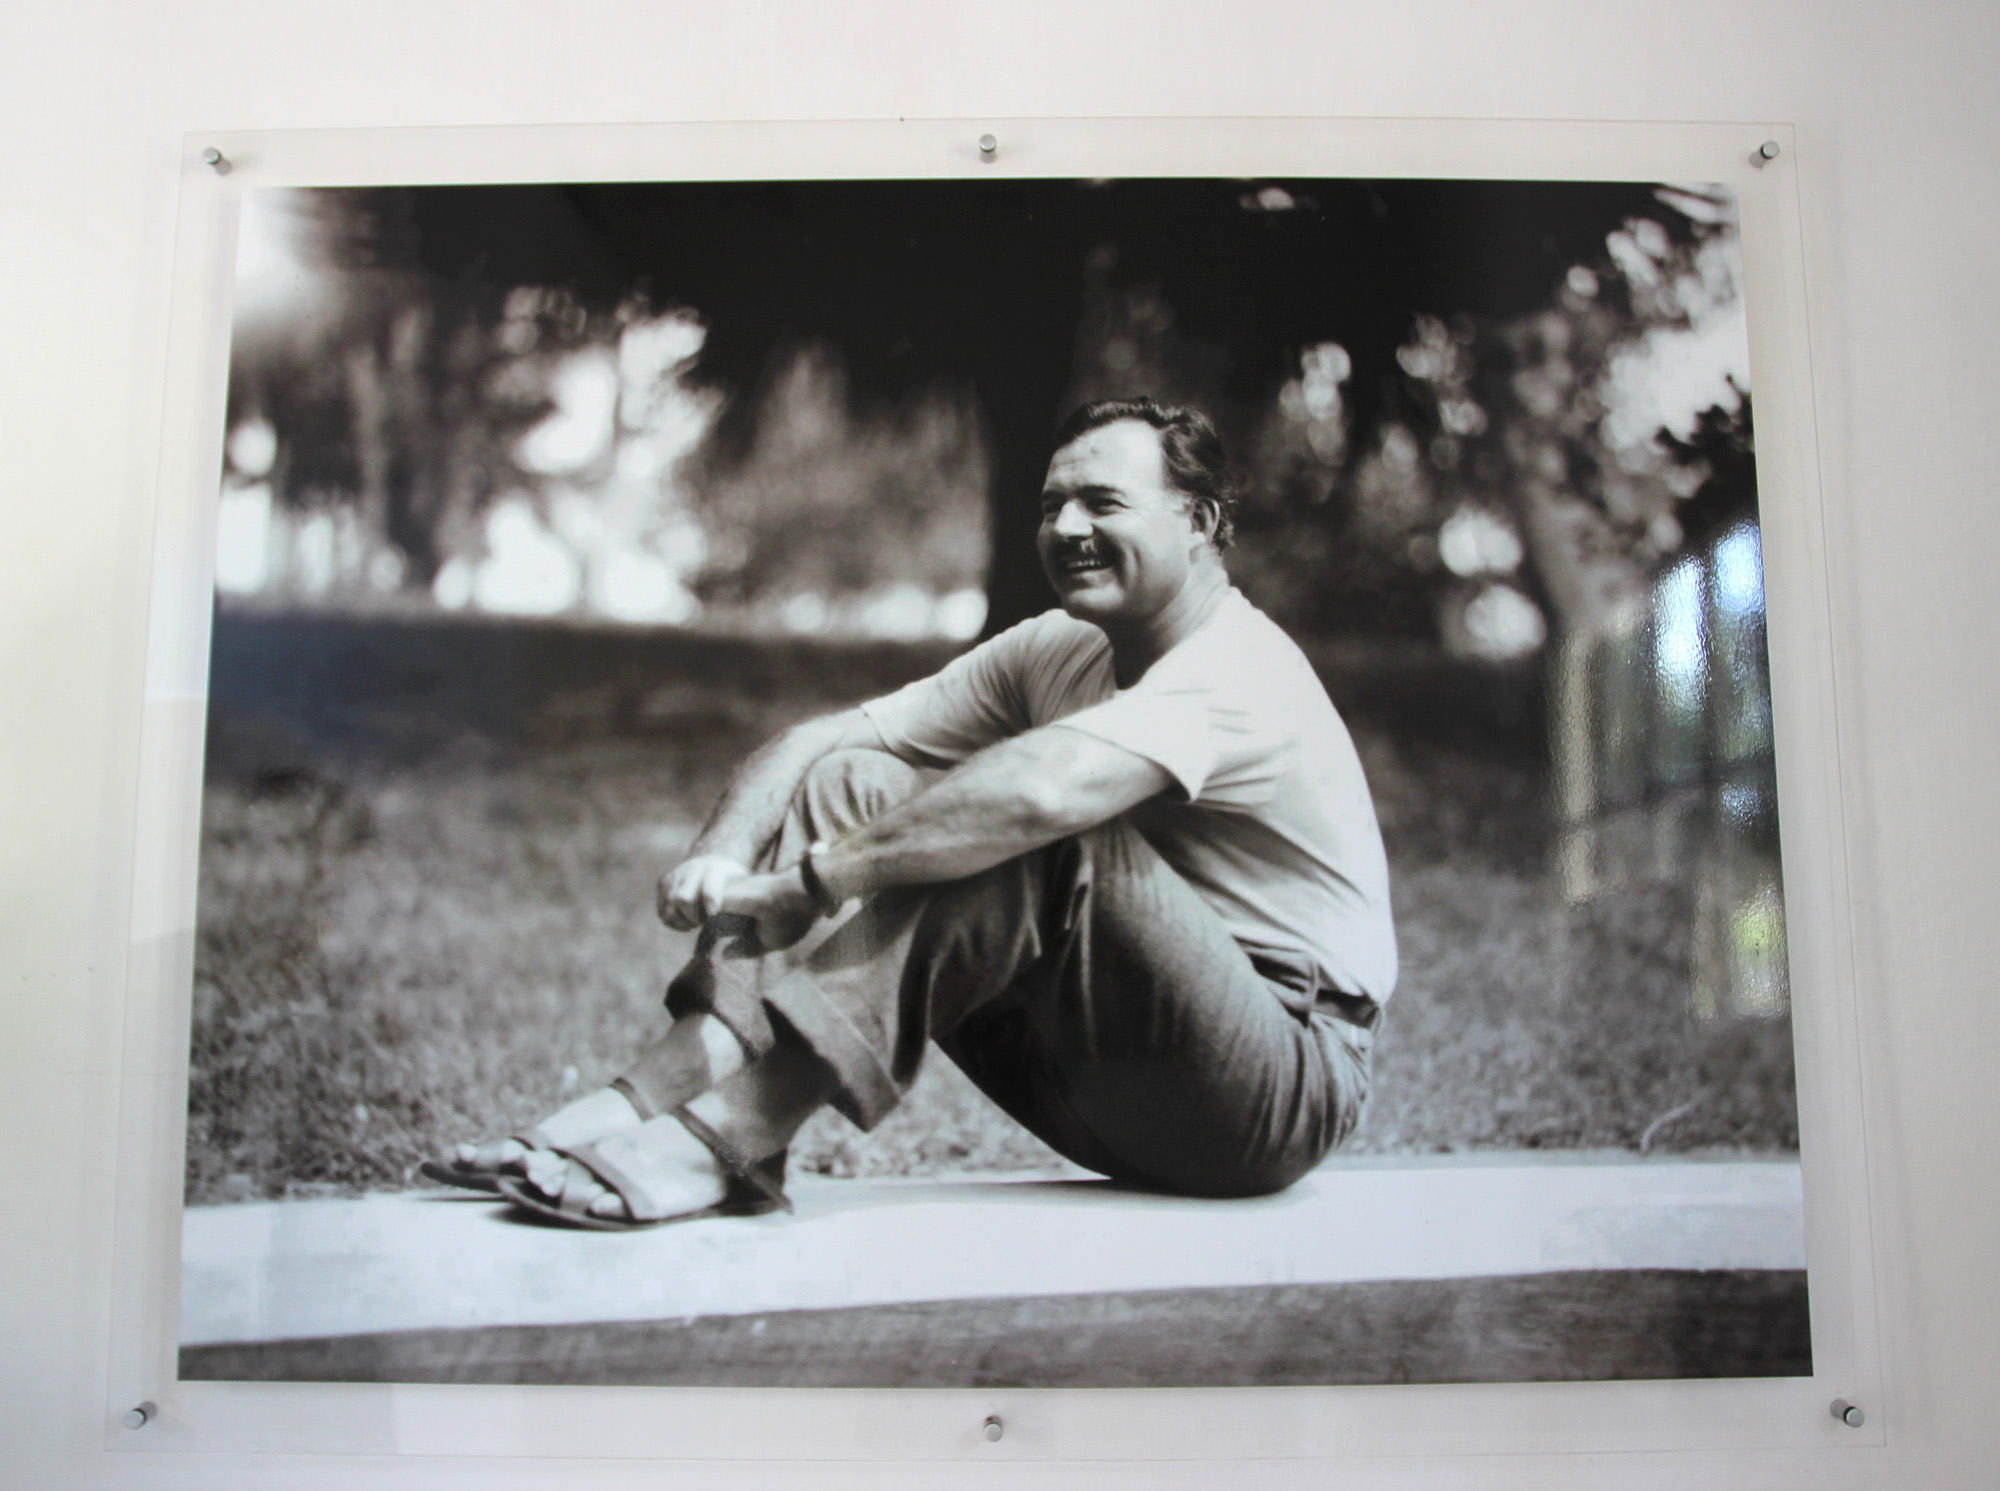 Take A Photo Tour Of Ernest Hemingway S Home In Cuba